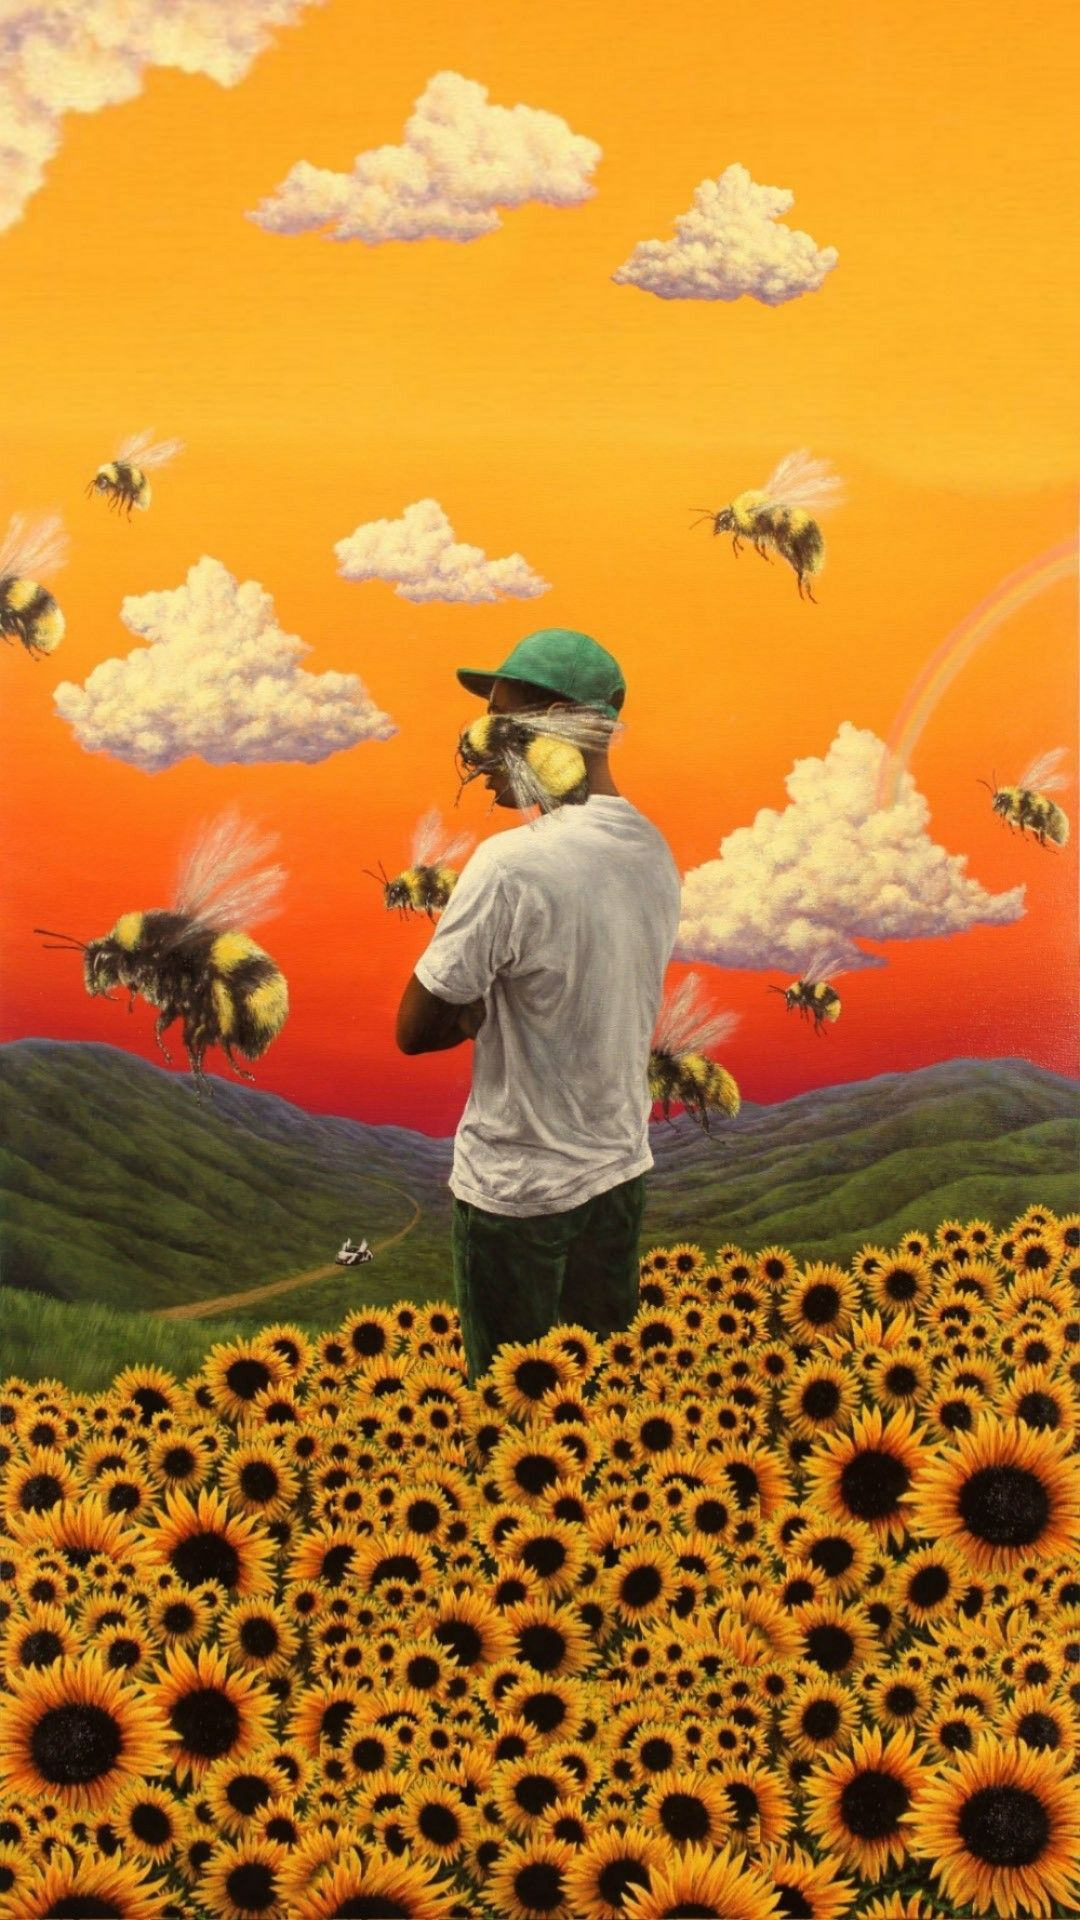 Okeyokeyokeyokeyokeyokeyokeyokeyokeyokeyokeydokey Tyler The Creator Wallpaper Tyler The Creator Aesthetic Wallpapers